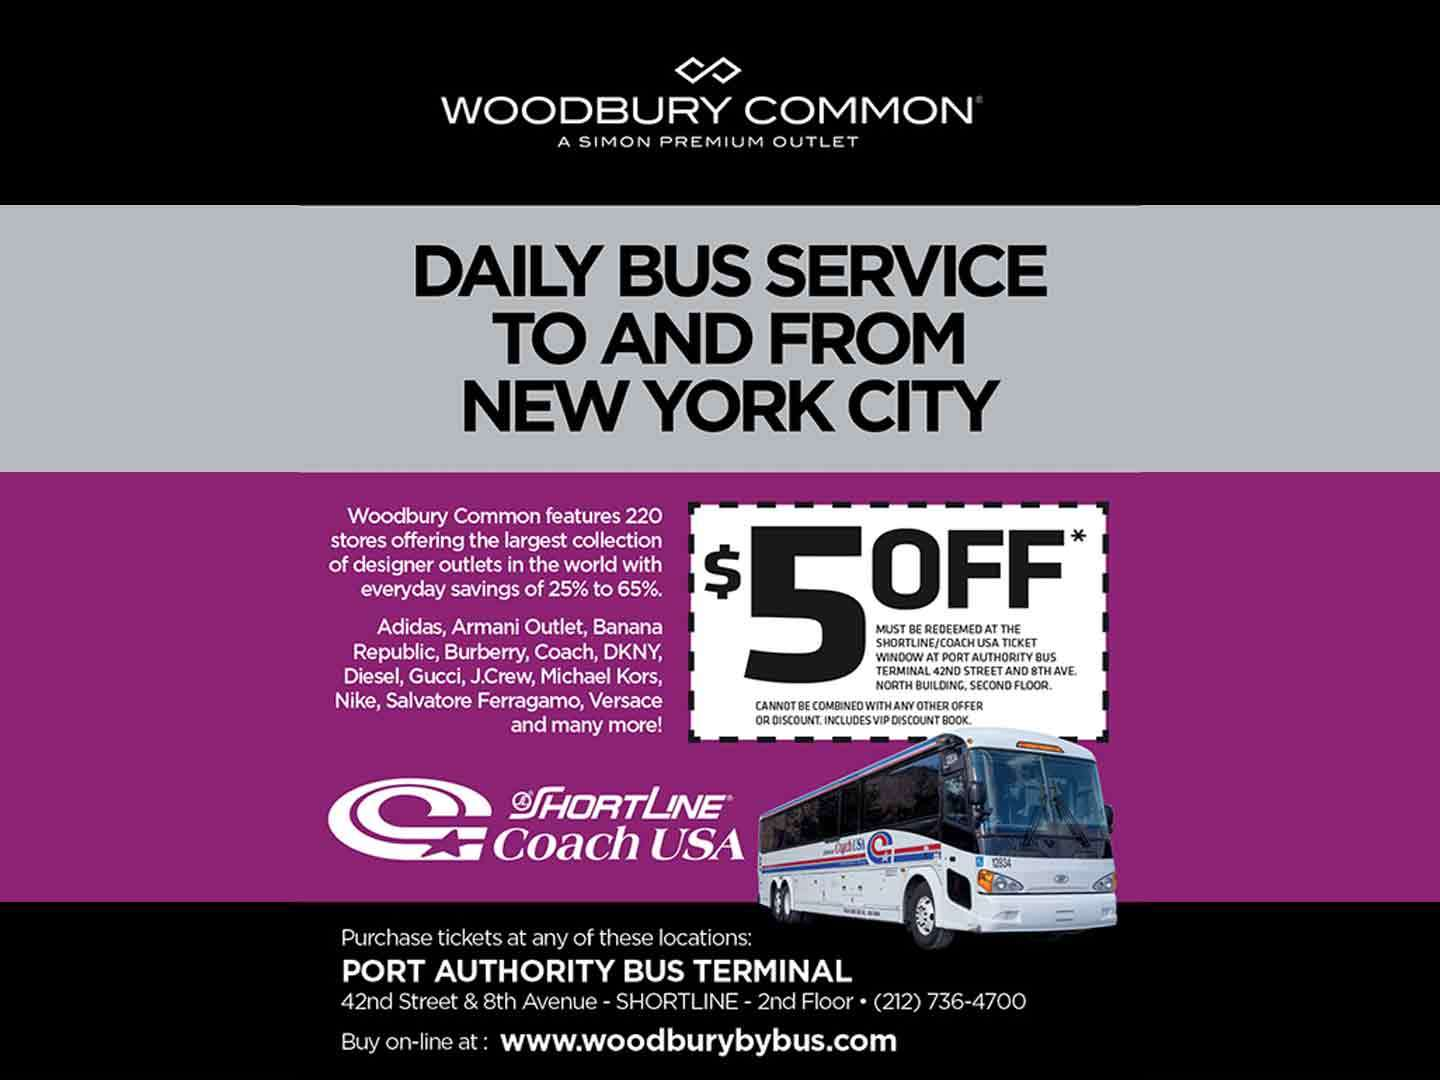 Daily bus service to Woodbury Common